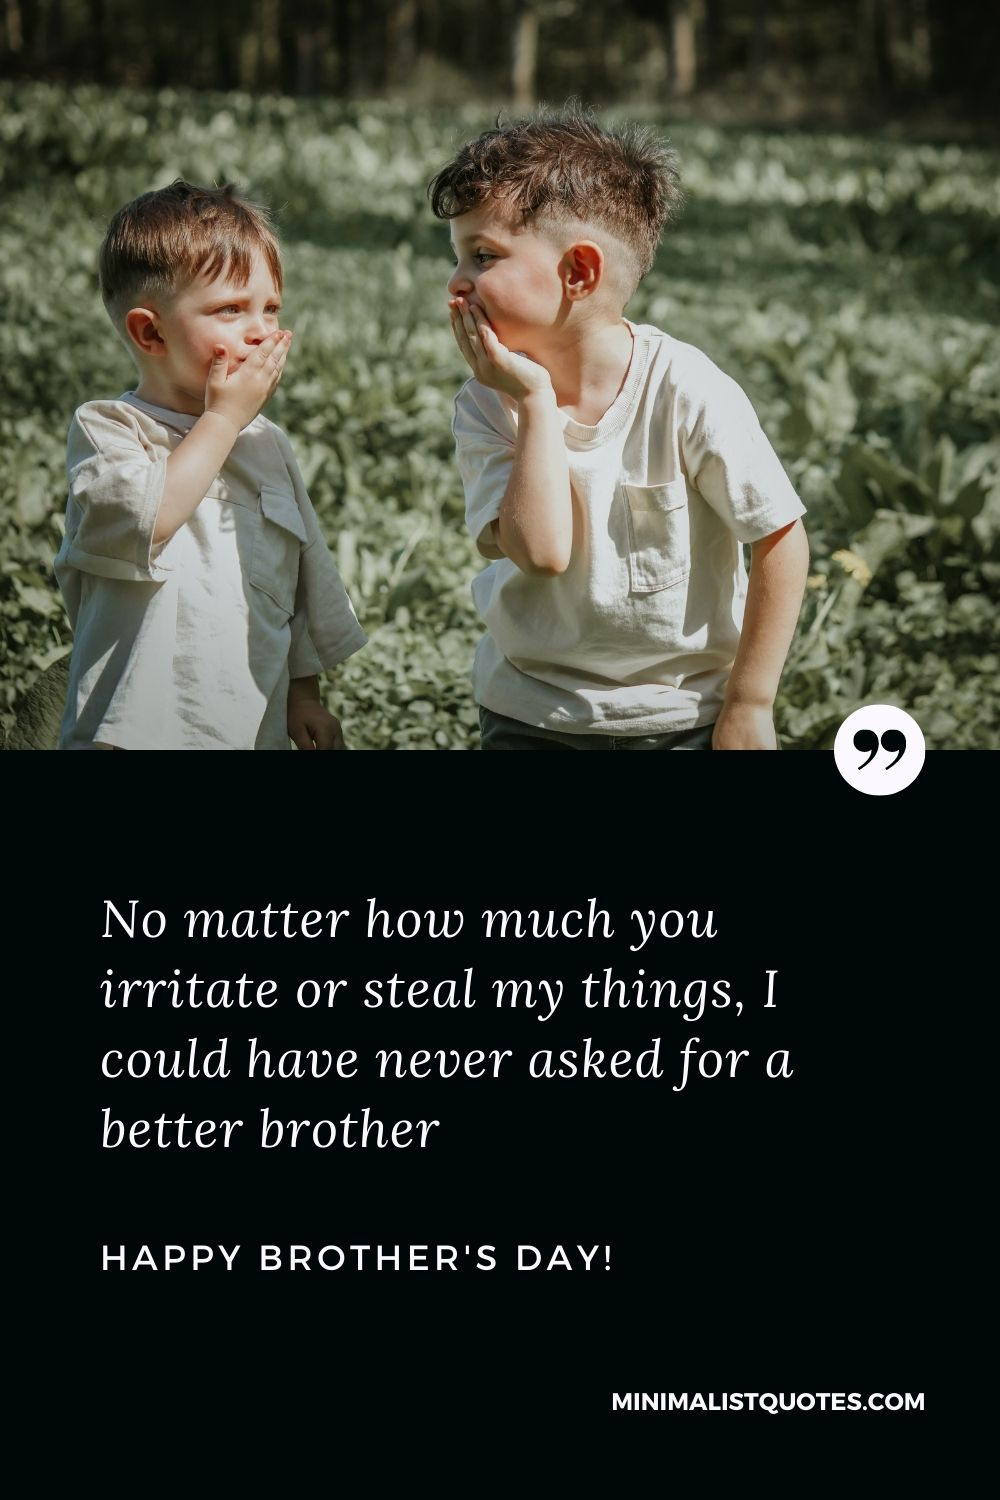 Brothers Day Quote, Wish & Message With Image: No matter how much you irritate or steal my things, I could have never asked for a better brother! Happy brothers day!